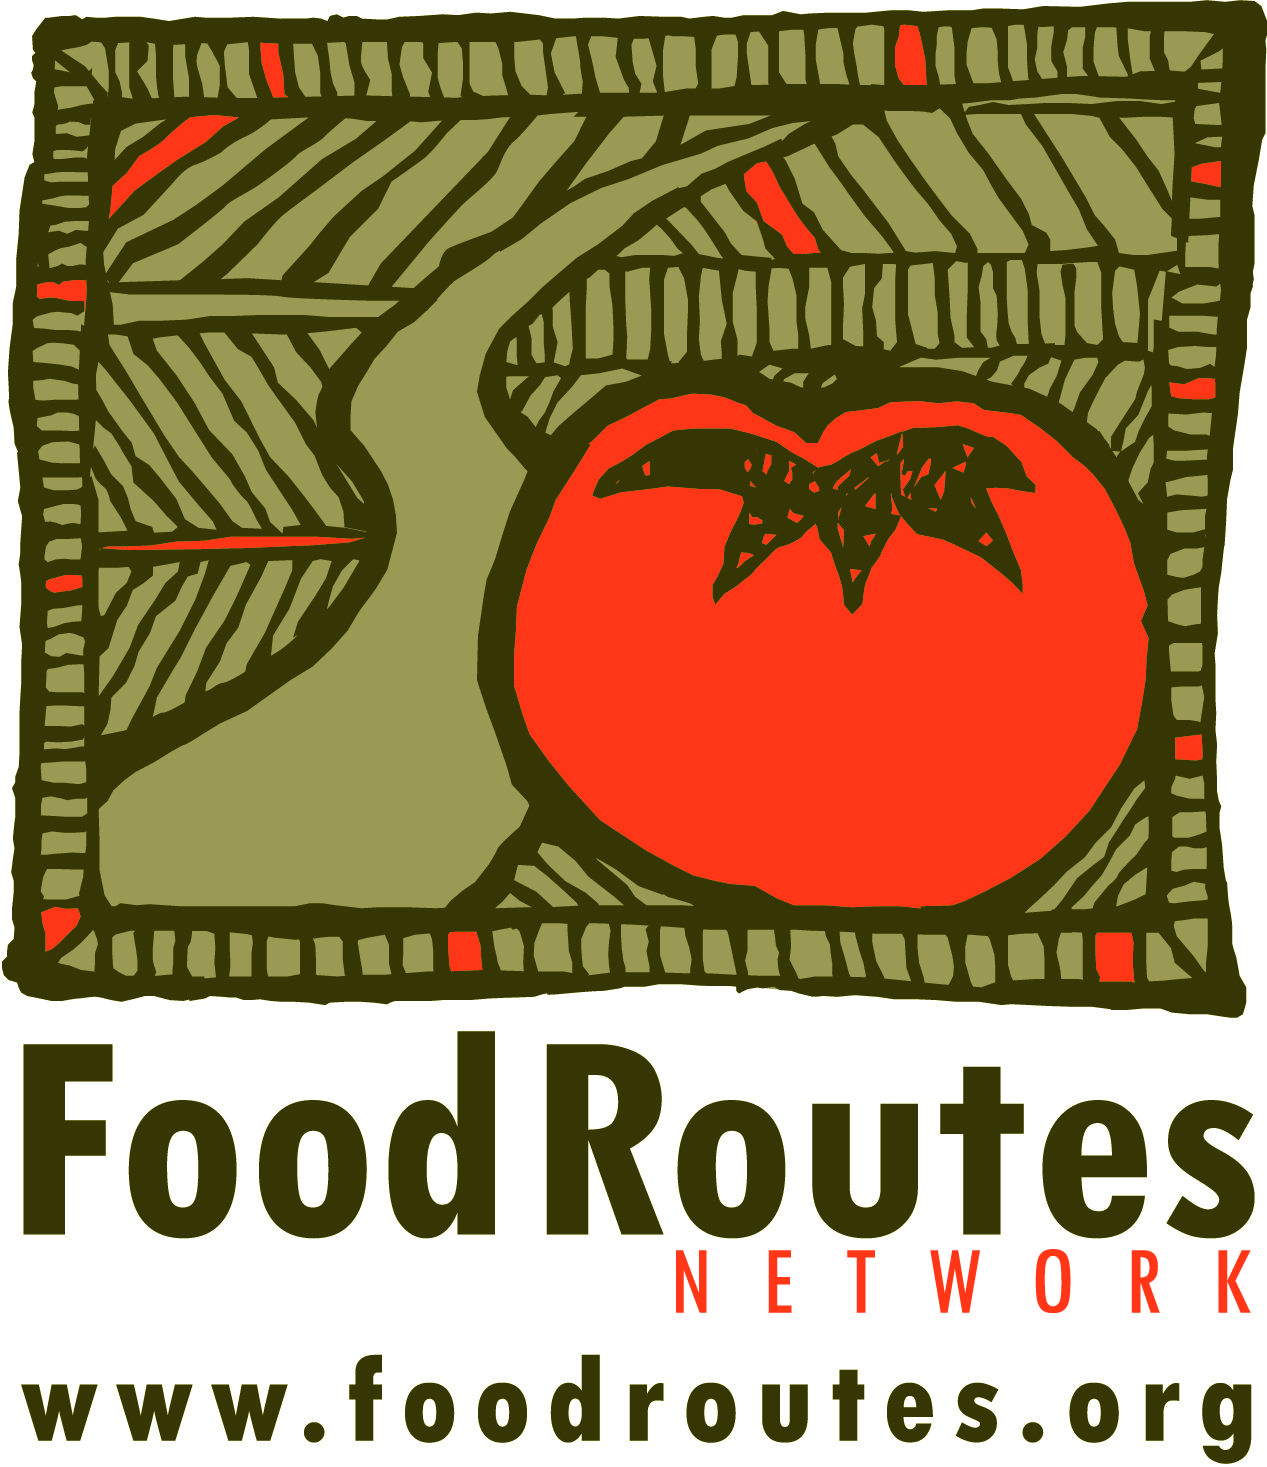 "Food Routes ""You'll get exceptional taste and freshness"